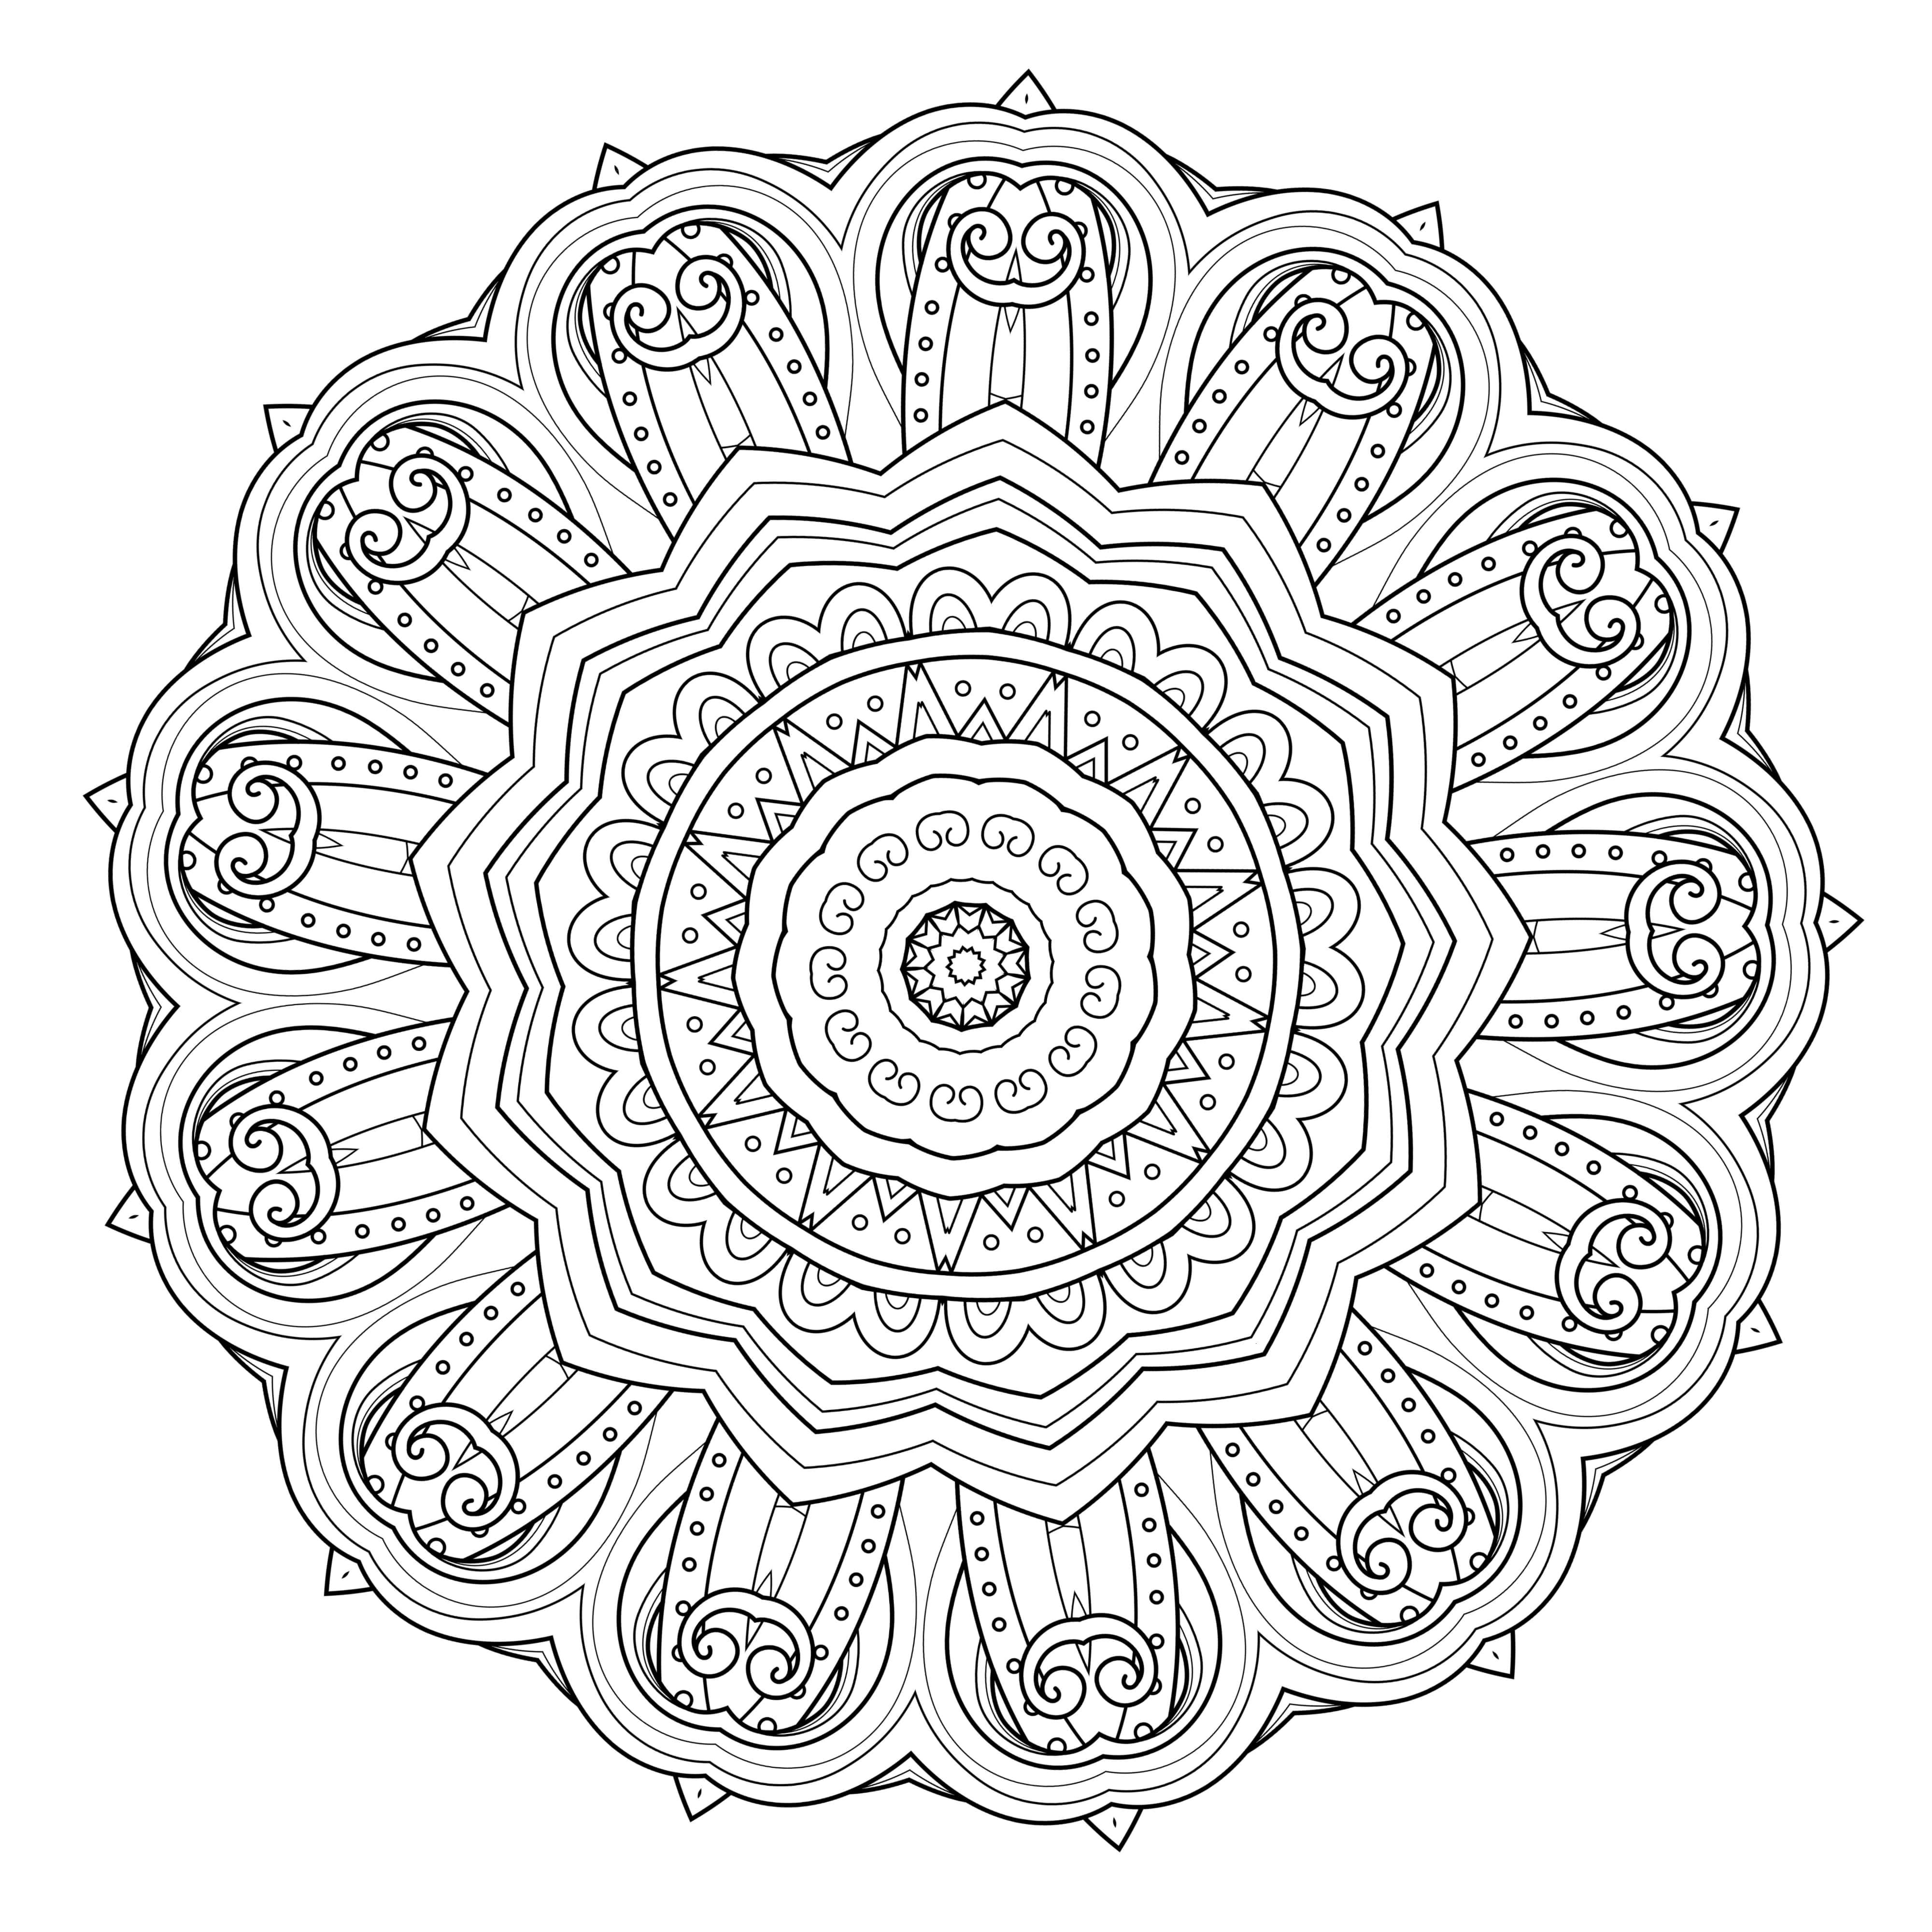 5 Free Printable Coloring Pages: Mandala Templates | Free ...